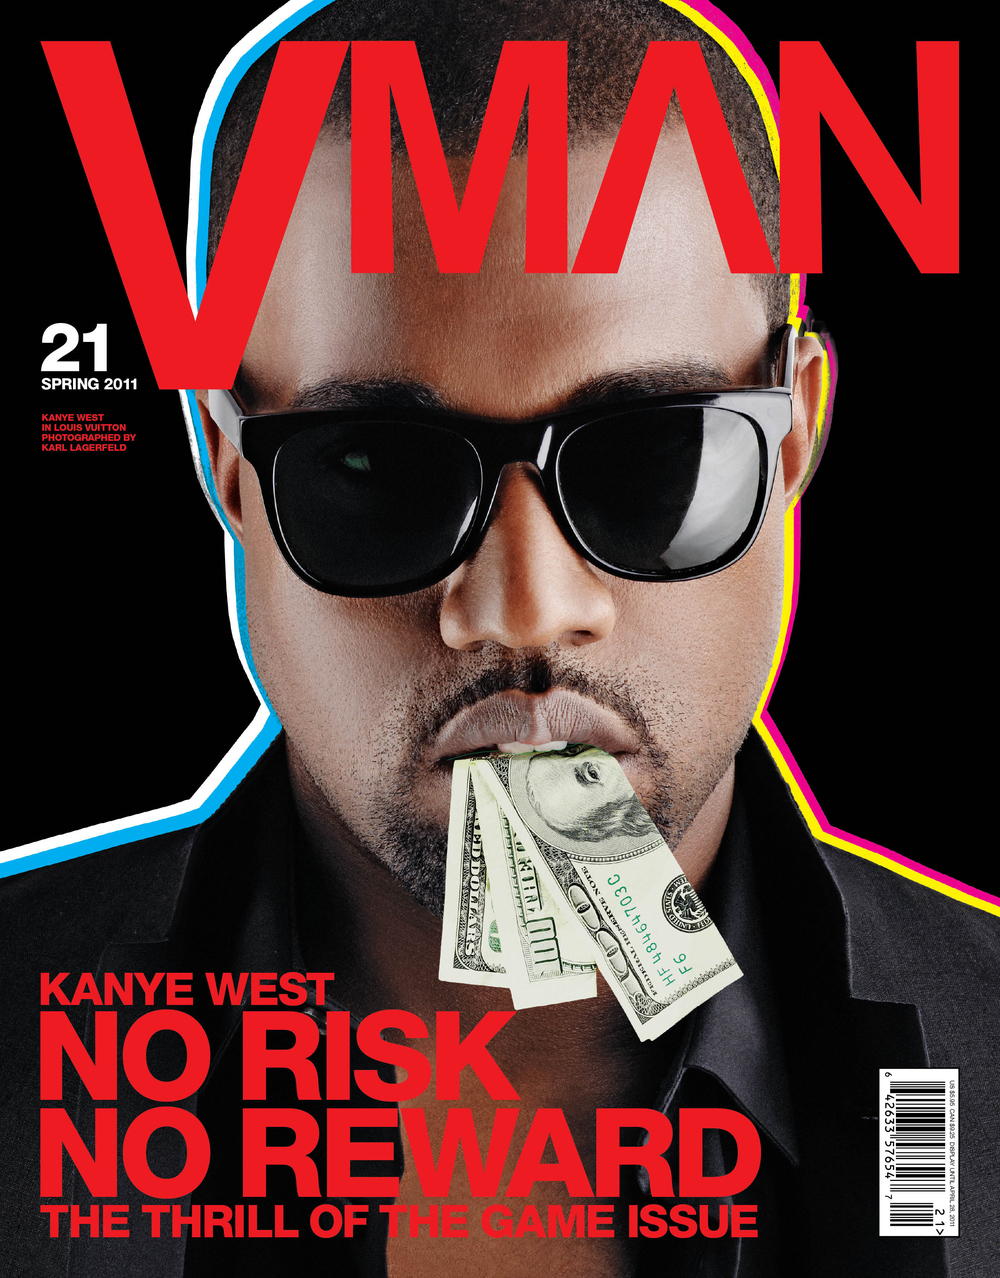 VN21_COVER_HR.jpg